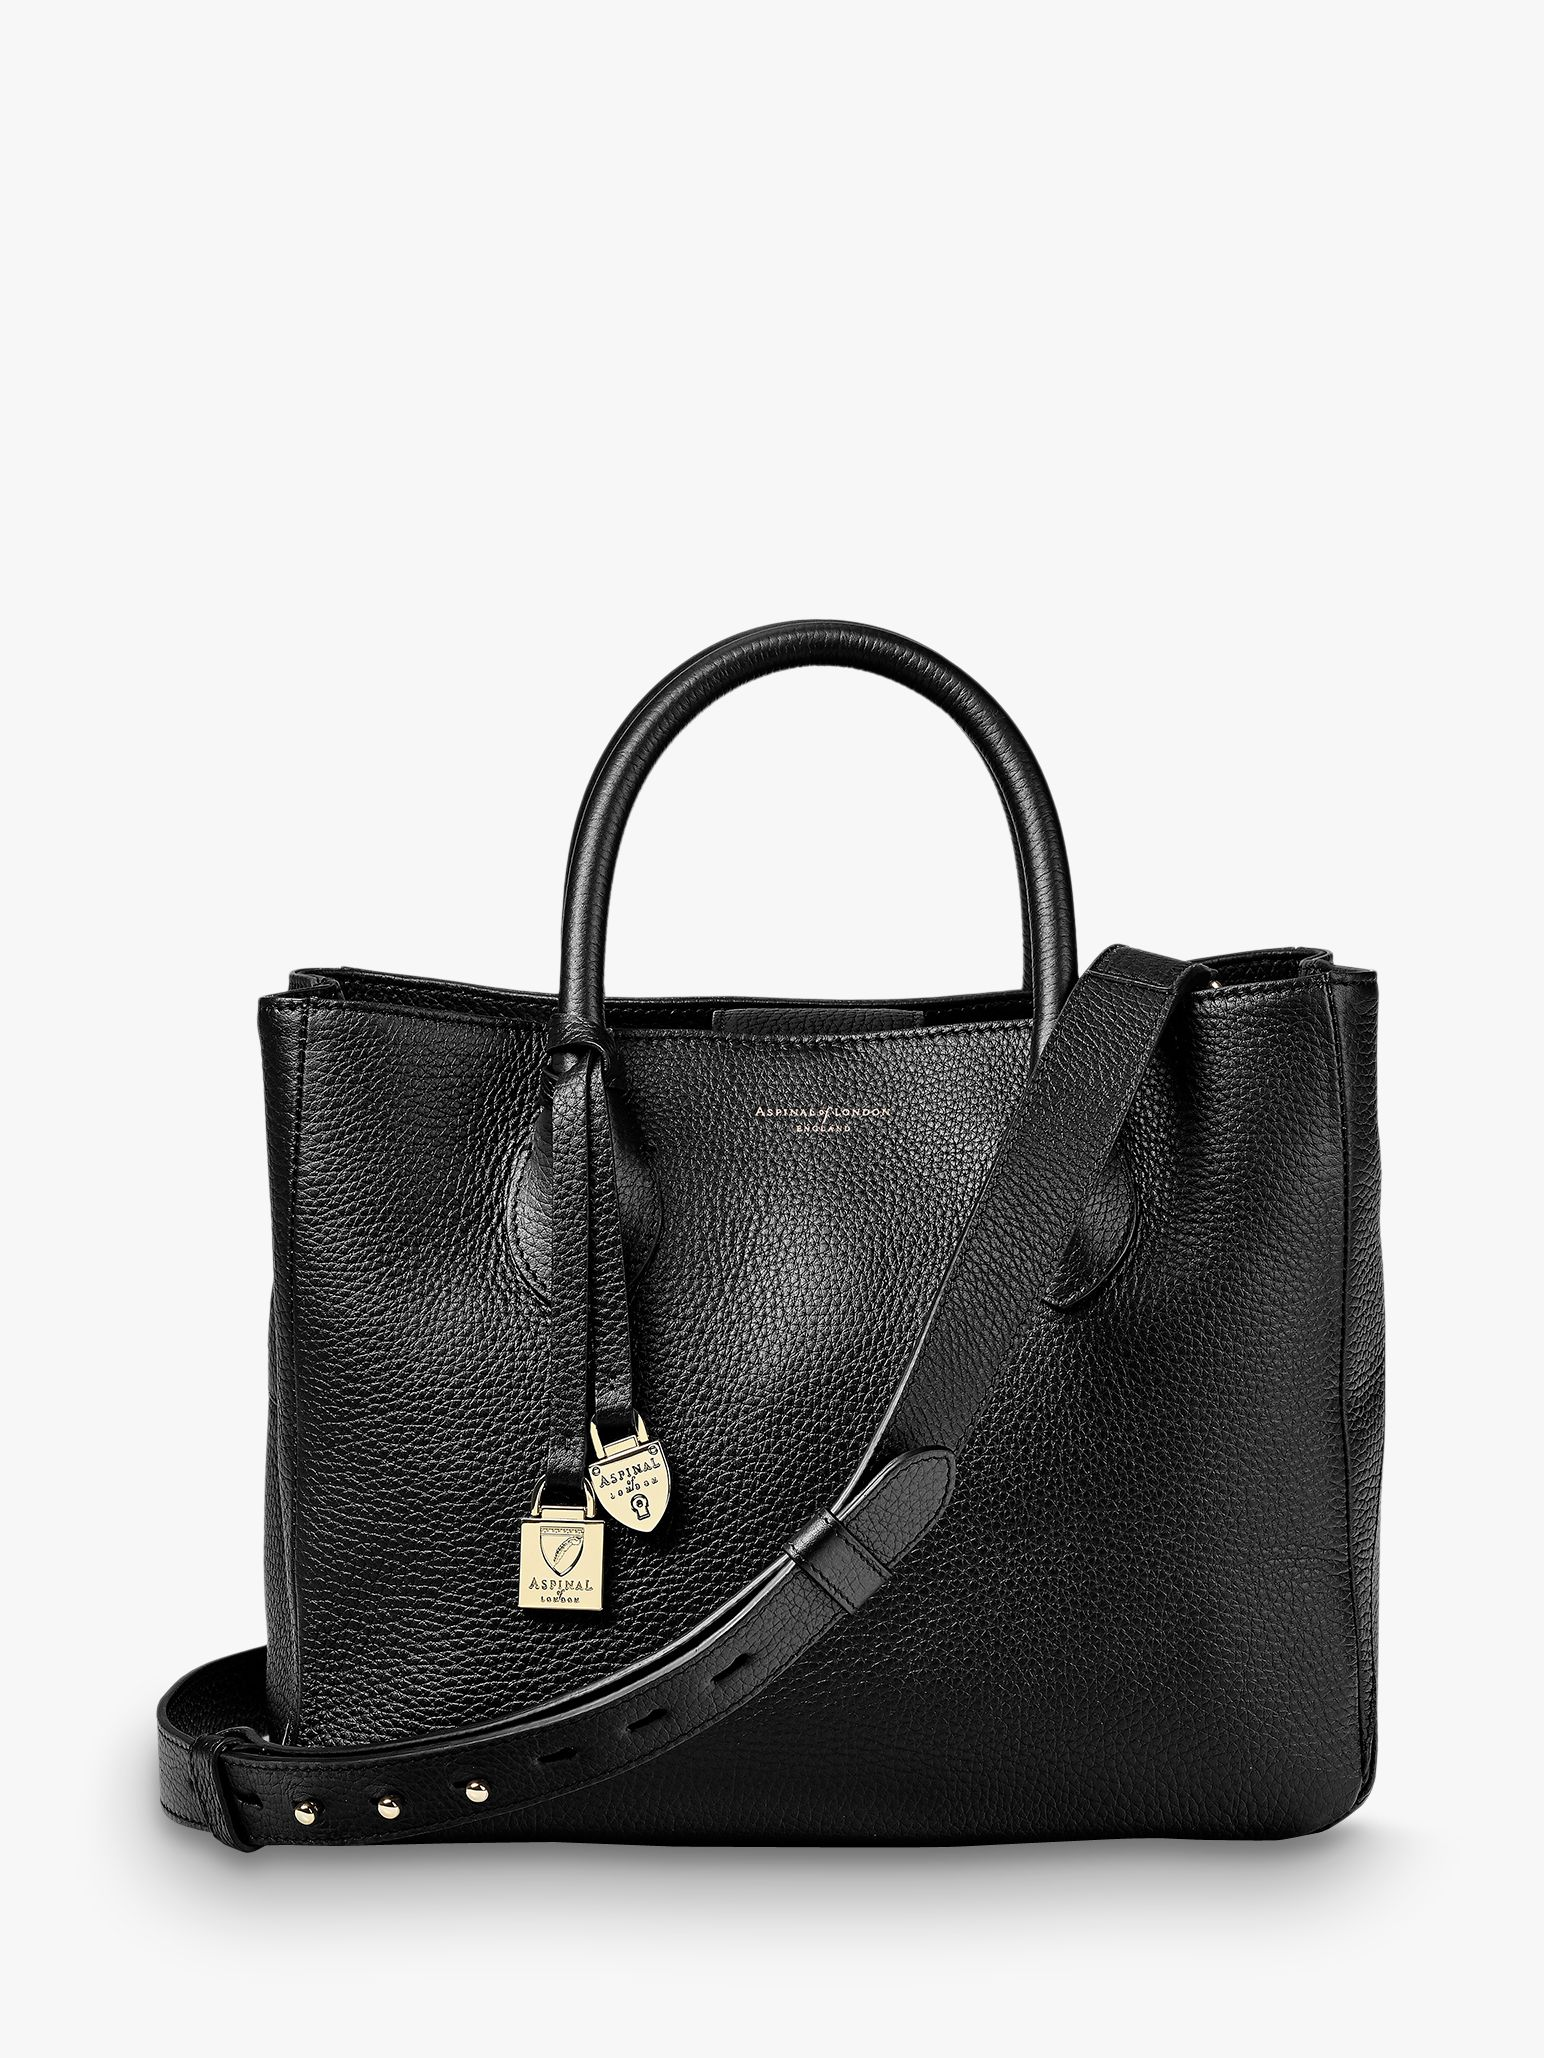 19984aa191ea4 Aspinal of London Small Leather Tote Bag at John Lewis   Partners